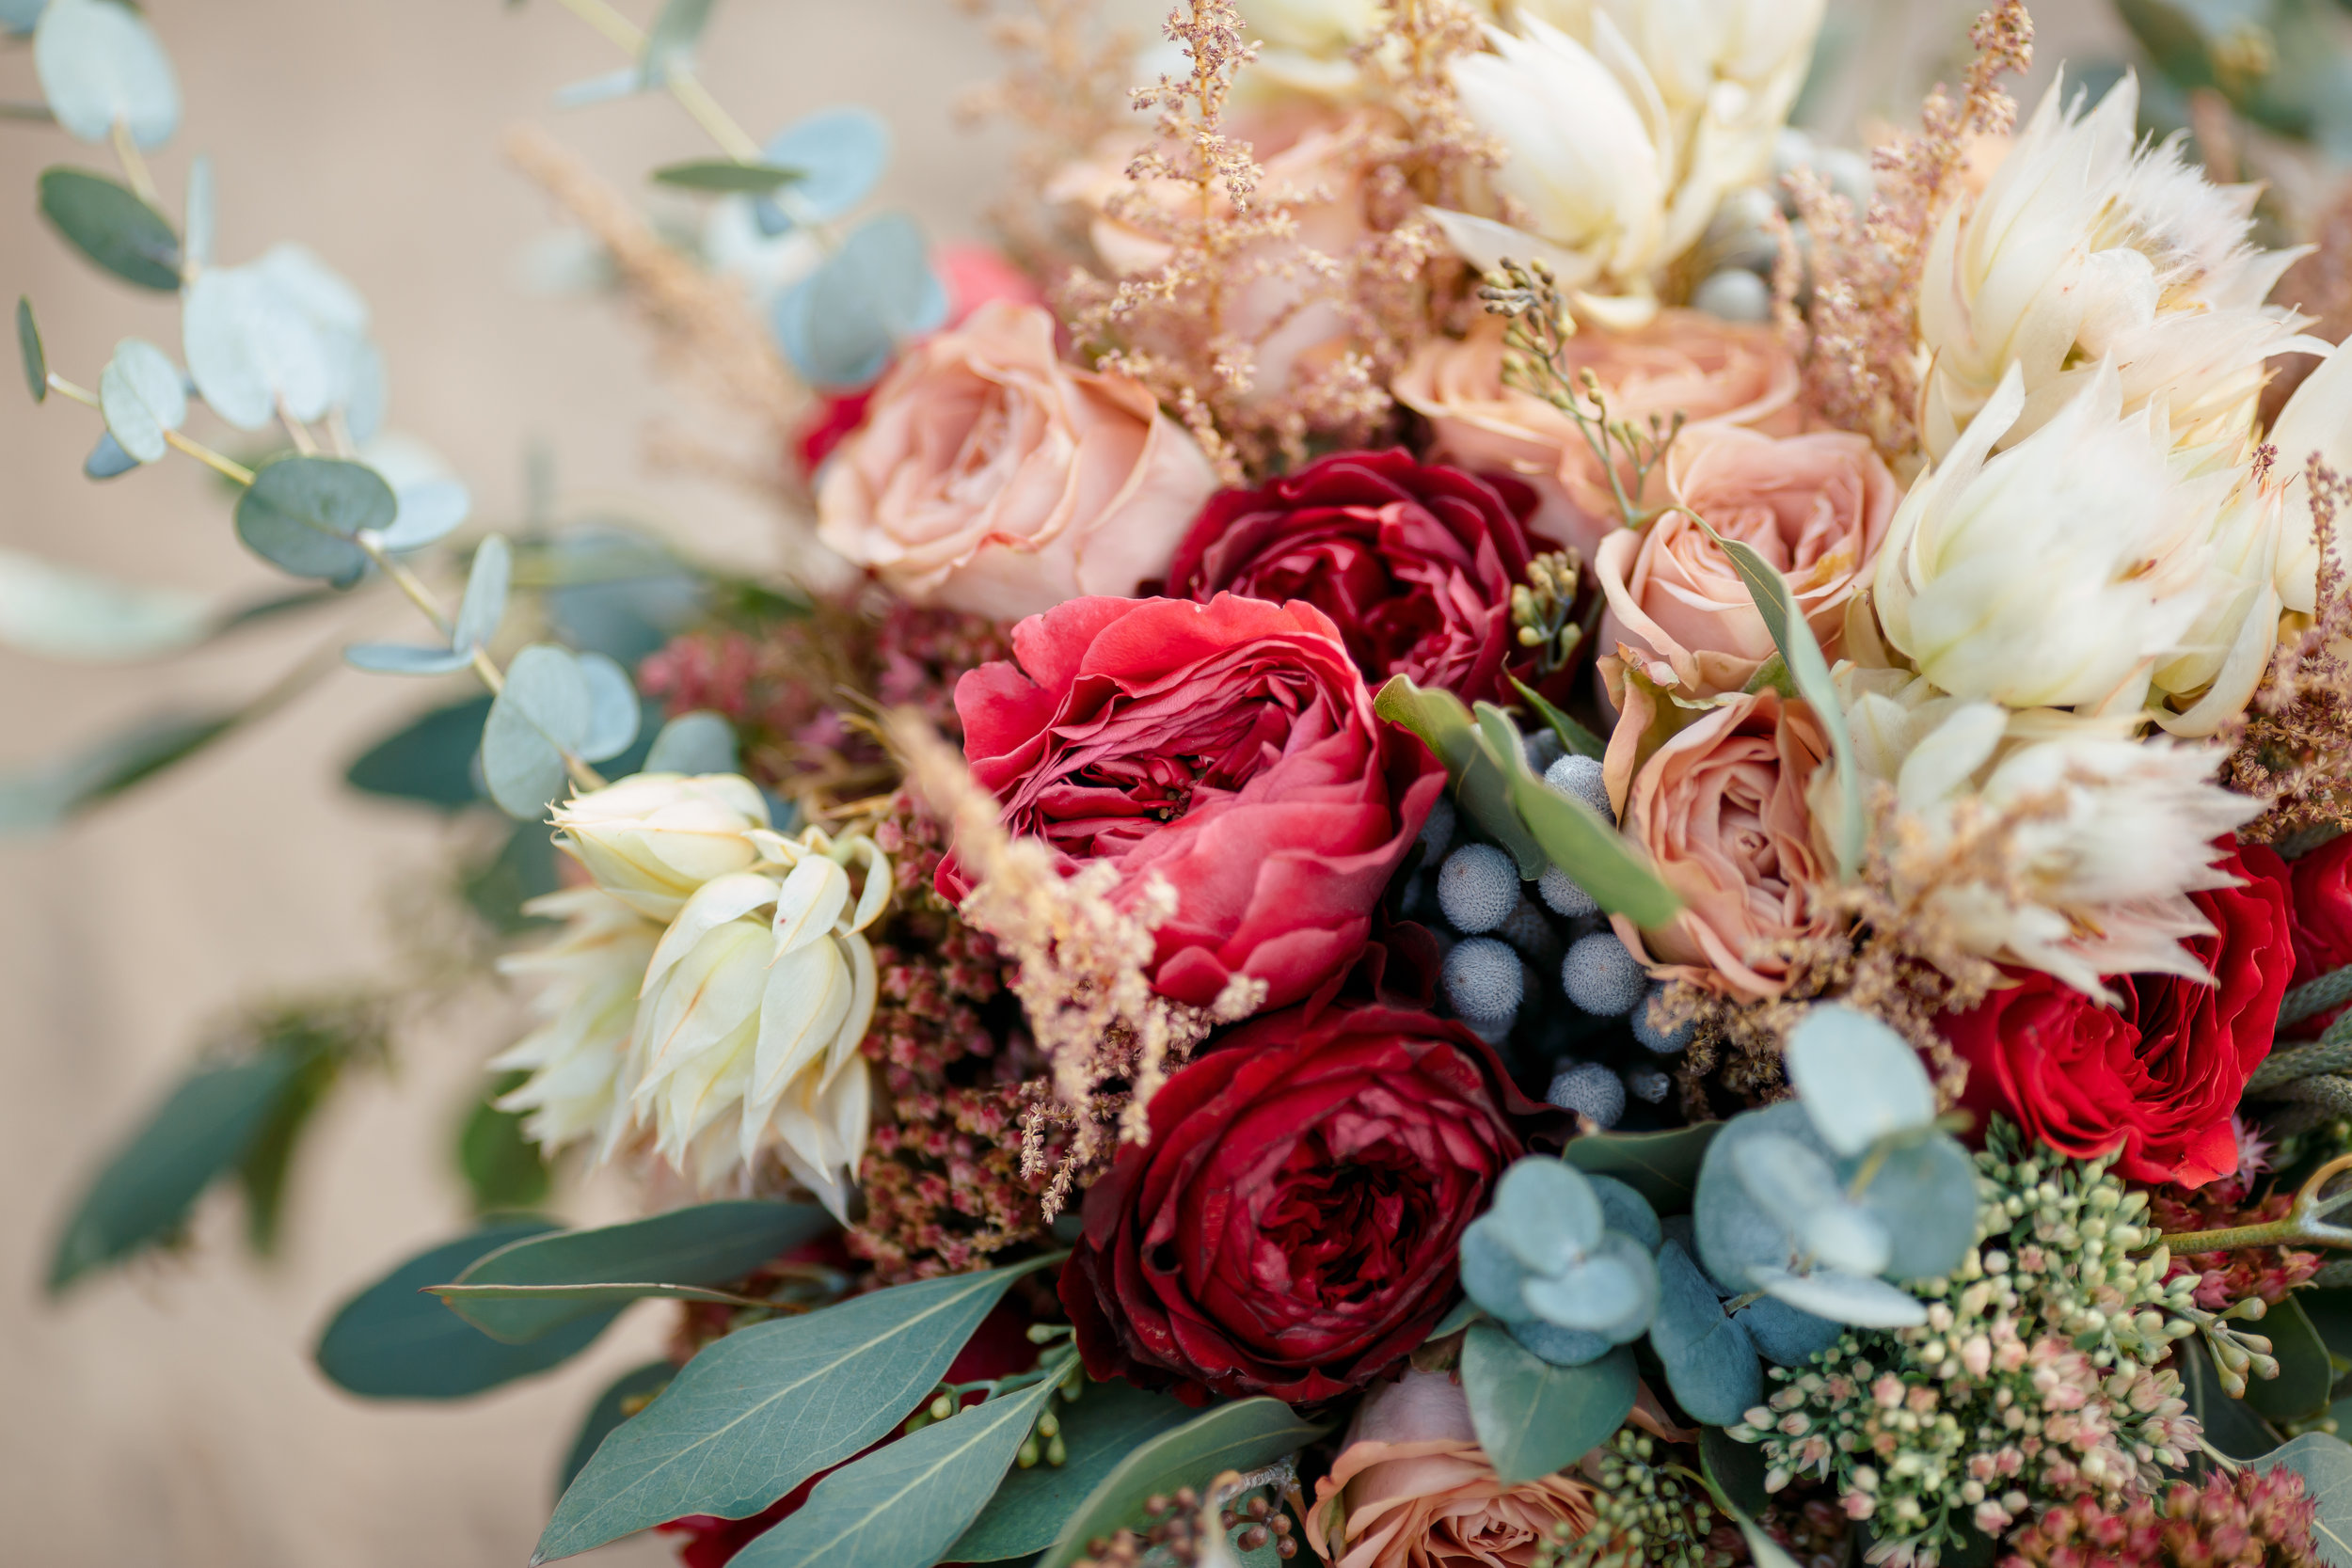 Beautiful wedding bouquet.